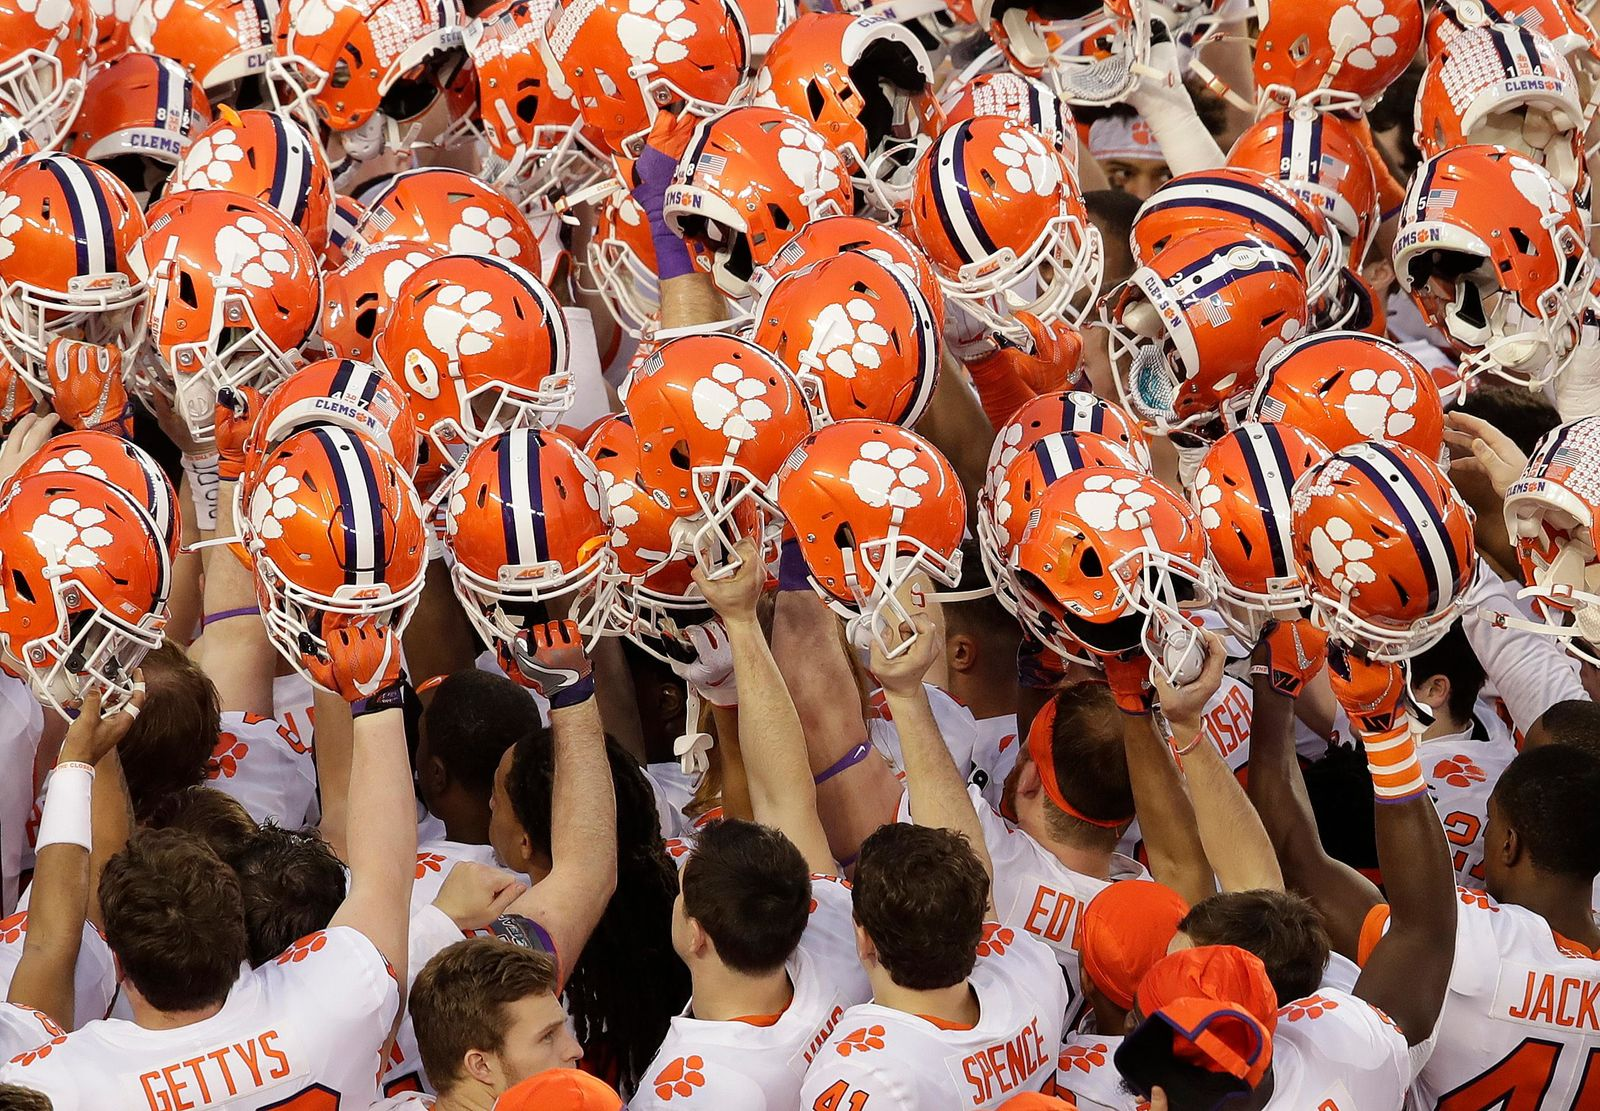 FILE - In this Jan. 7, 2019, file photo, Clemson players huddle before the NCAA college football playoff championship game against Alabama, in Santa Clara, Calif. For the first time, the defending national champion Tigers are No. 1 in The Associated Press preseason Top 25 presented by Regions Bank, Monday, Aug. 19, 2019. (AP Photo/Jeff Chiu, File)